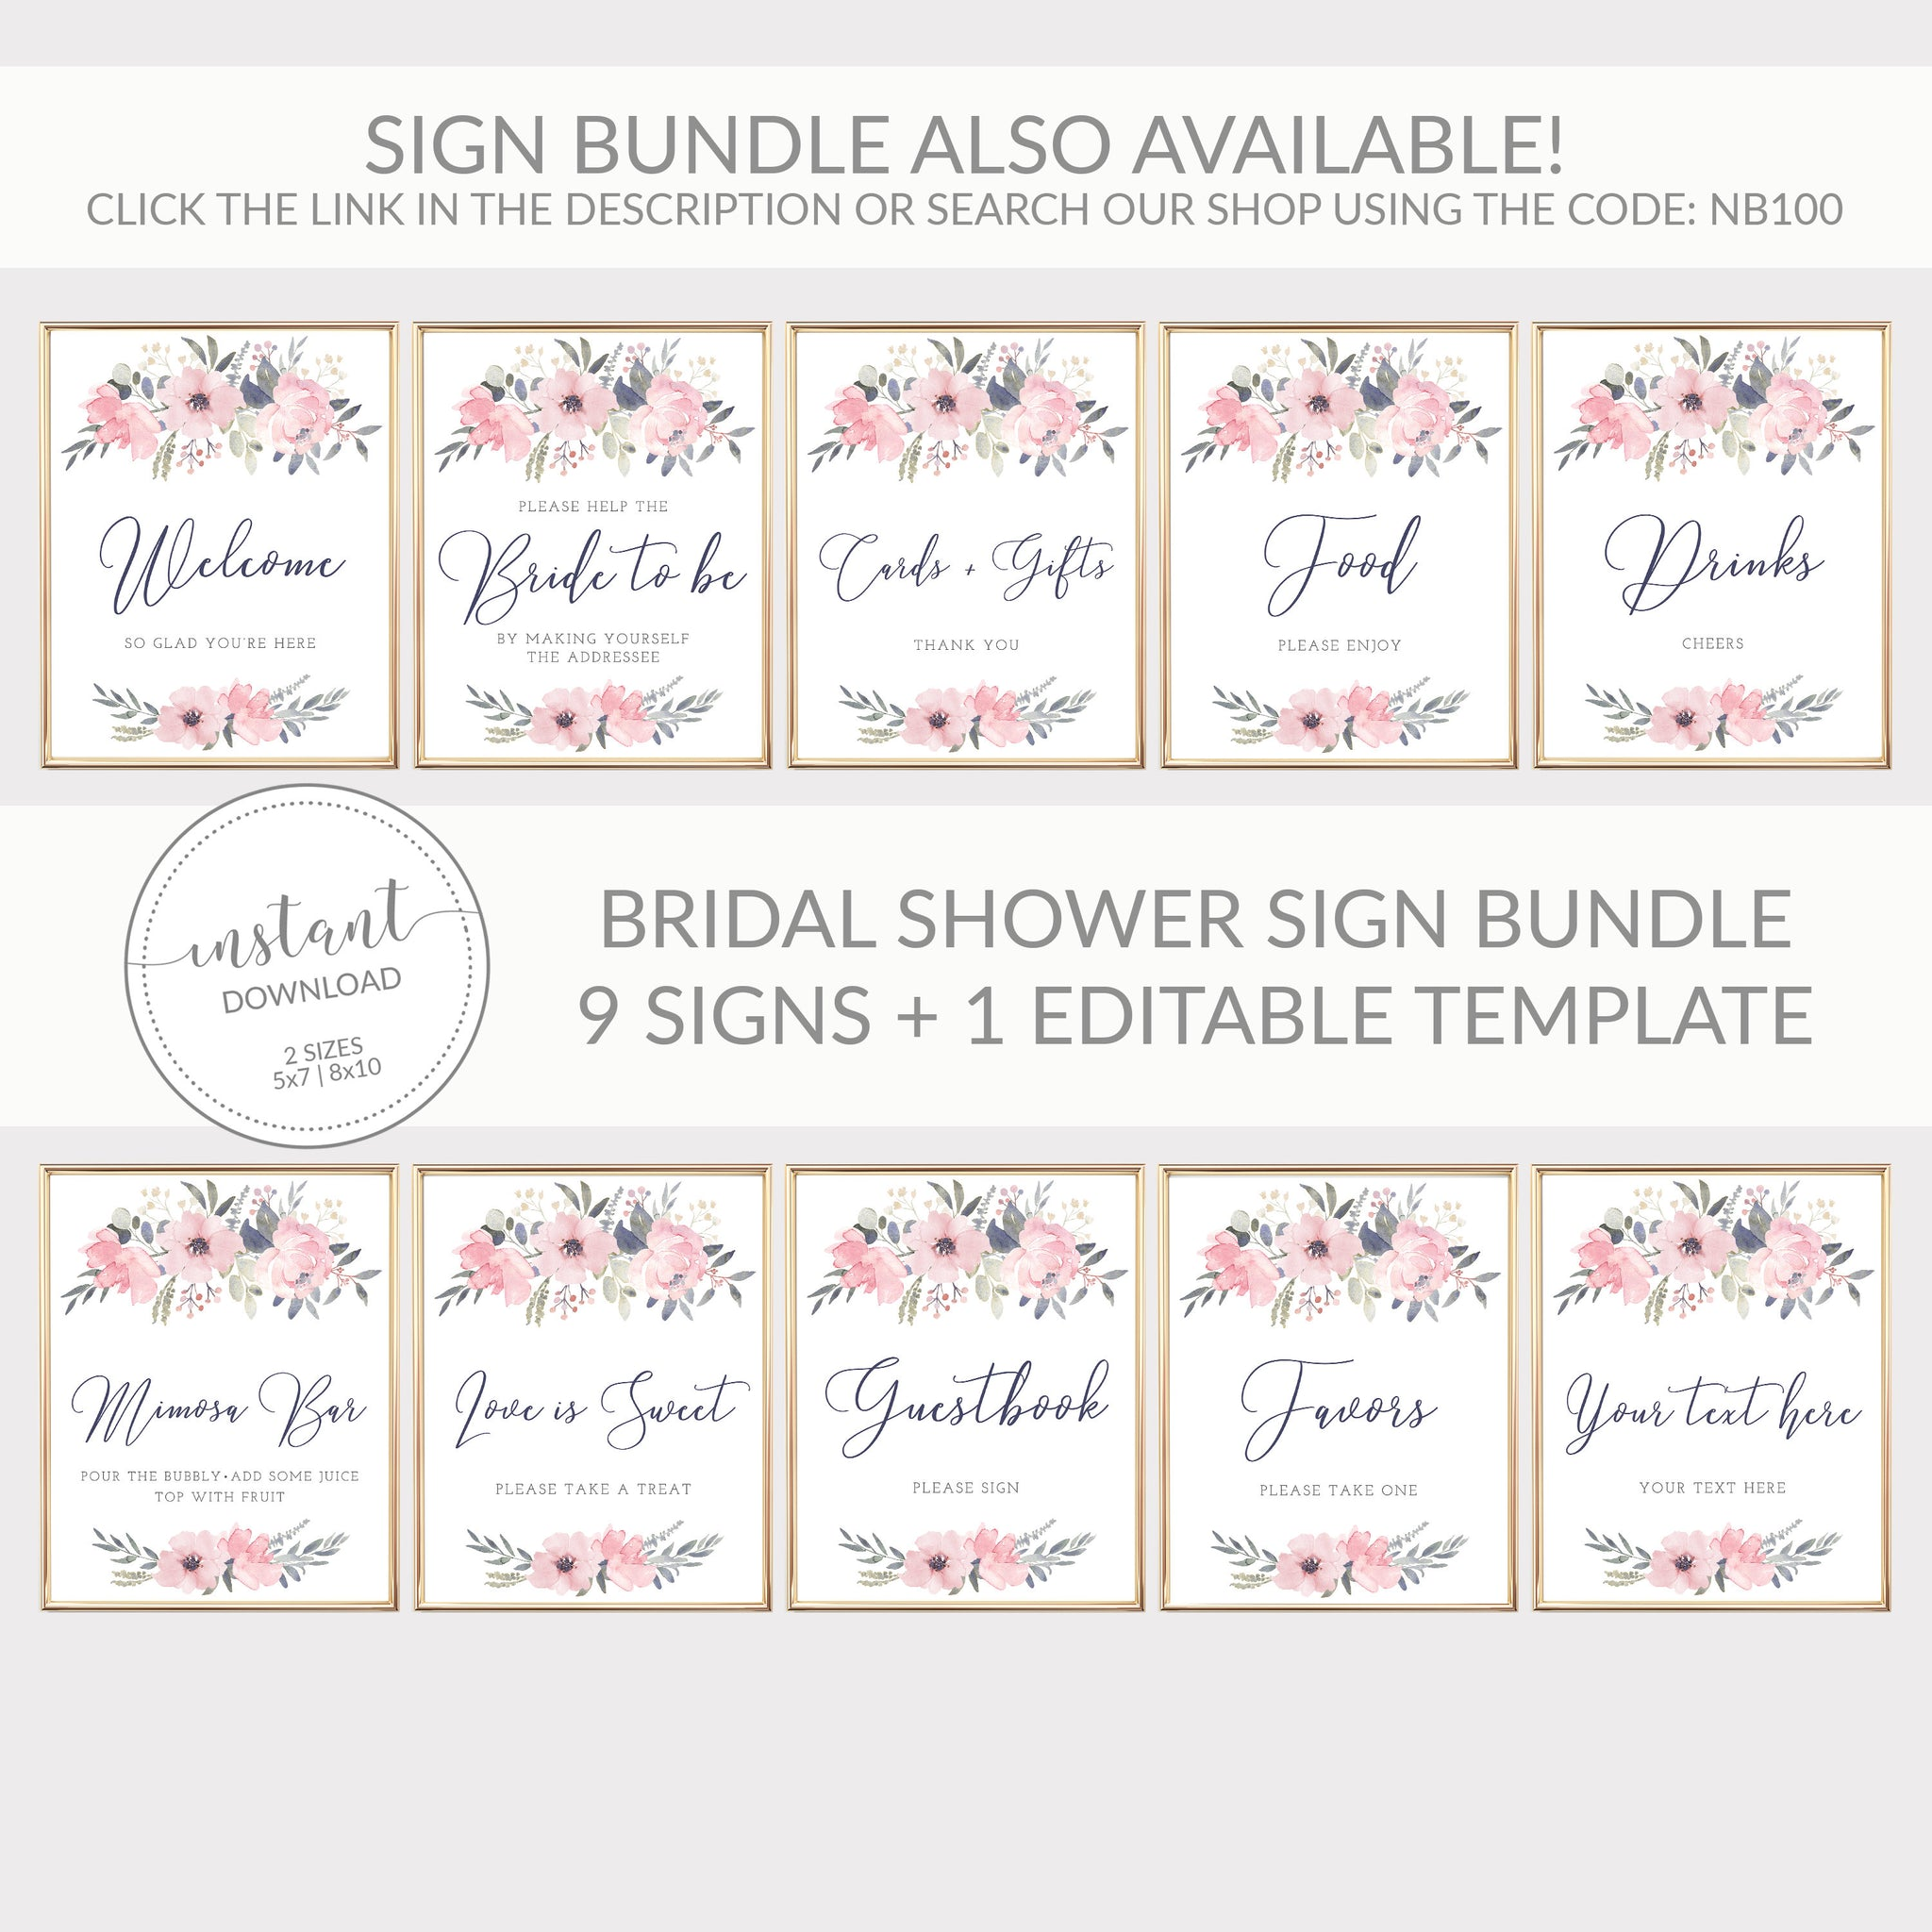 Navy and Blush Floral Printable Bridal Shower Address an Envelope Sign, INSTANT DOWNLOAD, Floral Bridal Shower Decorations Supplies - NB100 - @PlumPolkaDot